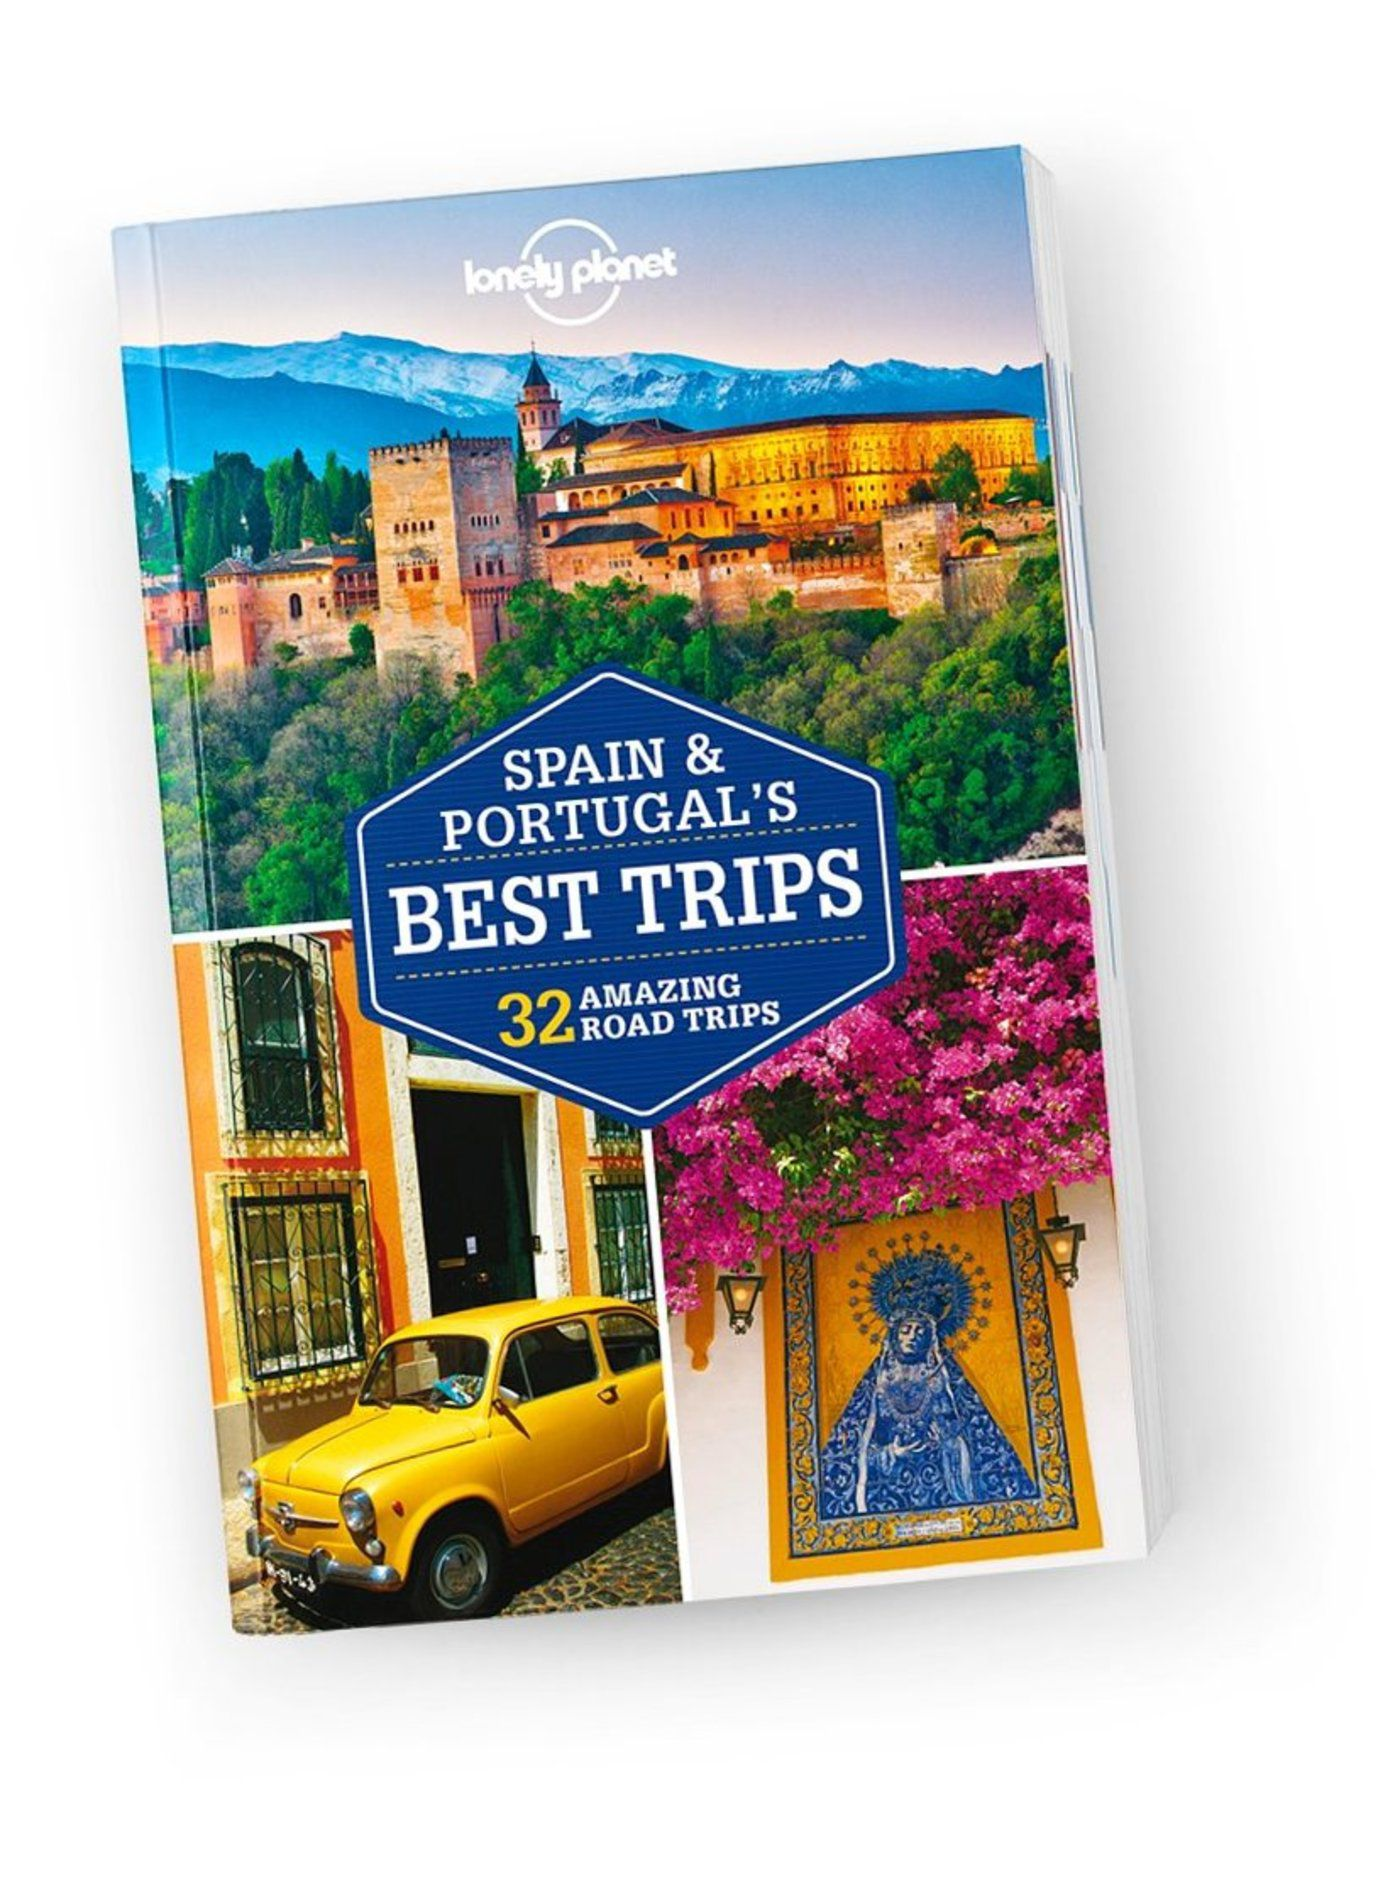 Spain & Portugal's Best Trips - Barcelona & Eastern Spain (PDF Chapter), 1st Edition Feb 2016 by Lonely Planet 9781743606940004